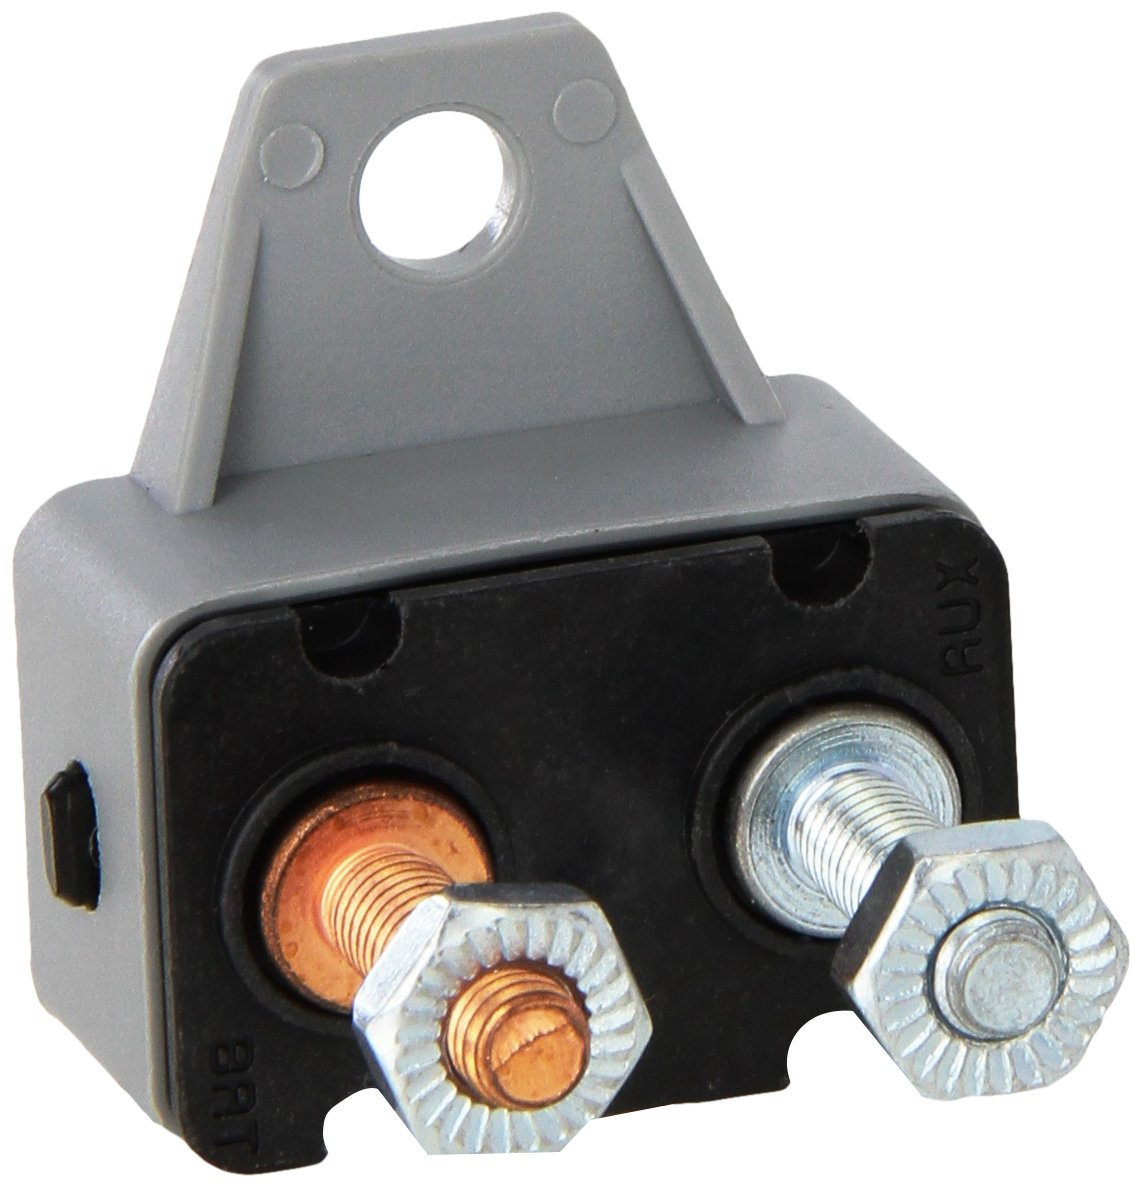 Sea Dog 420843-1 Resettable Circuit Breaker without Cover 30 Amp